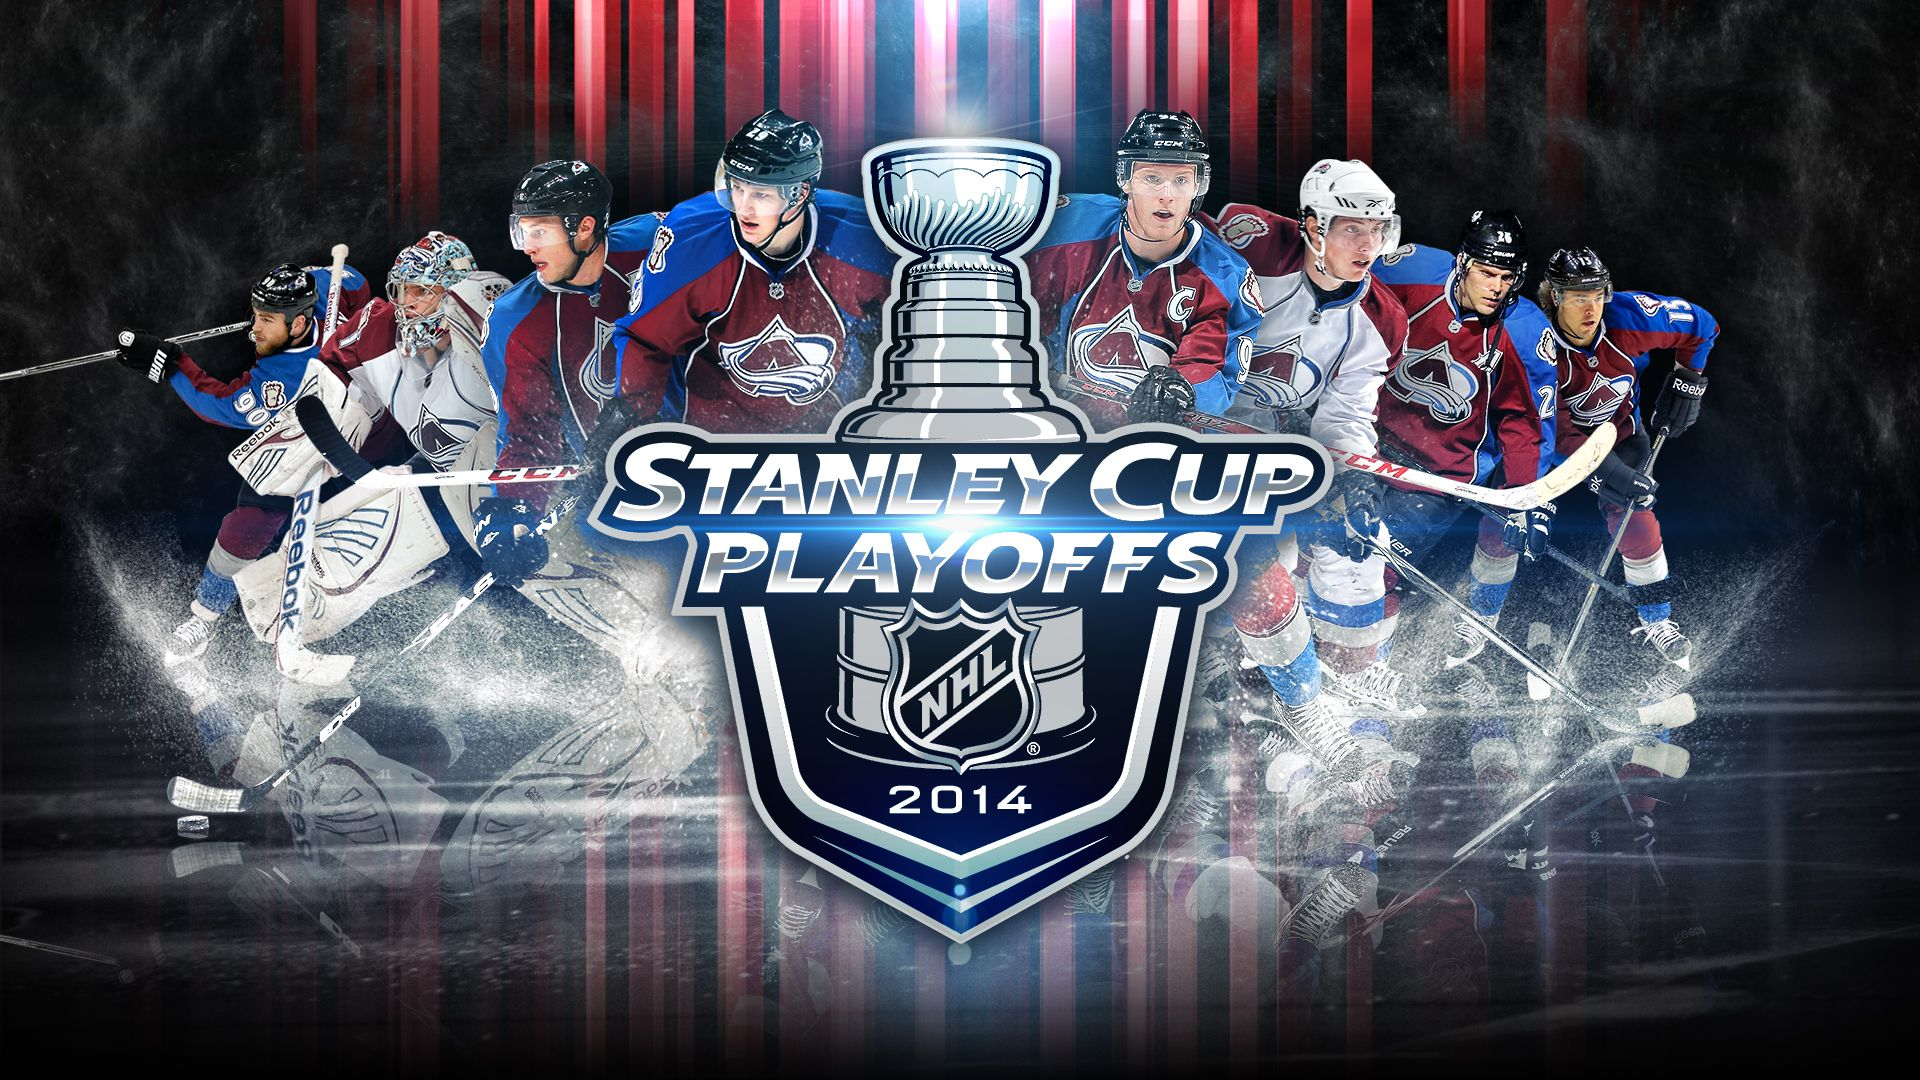 Colorado avalanche wallpaper backgrounds colorado avalanche nhl colorado avalanche wallpaper backgrounds colorado avalanche nhl playoffs 2014 wallpaper by denversportswalls on sciox Choice Image